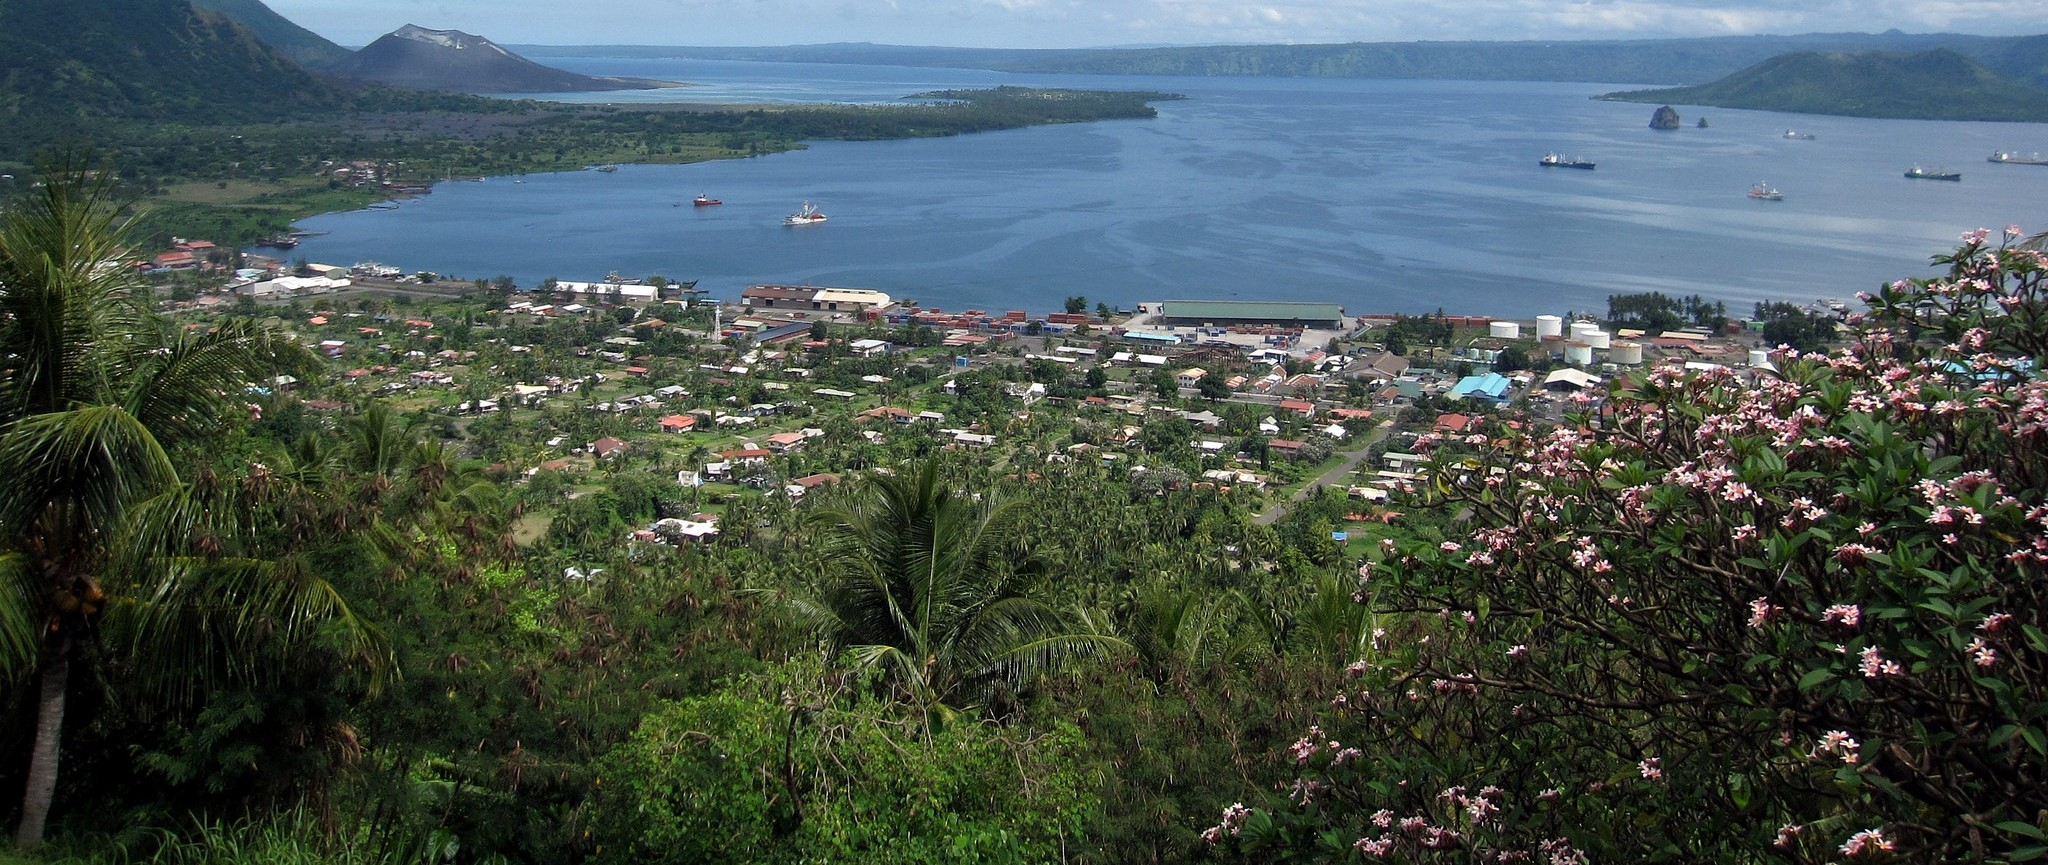 The town of Rabaul, on the island of New Britain, Papua New Guinea, 2012 (Photo: Flickr/Stefan Krasowski)